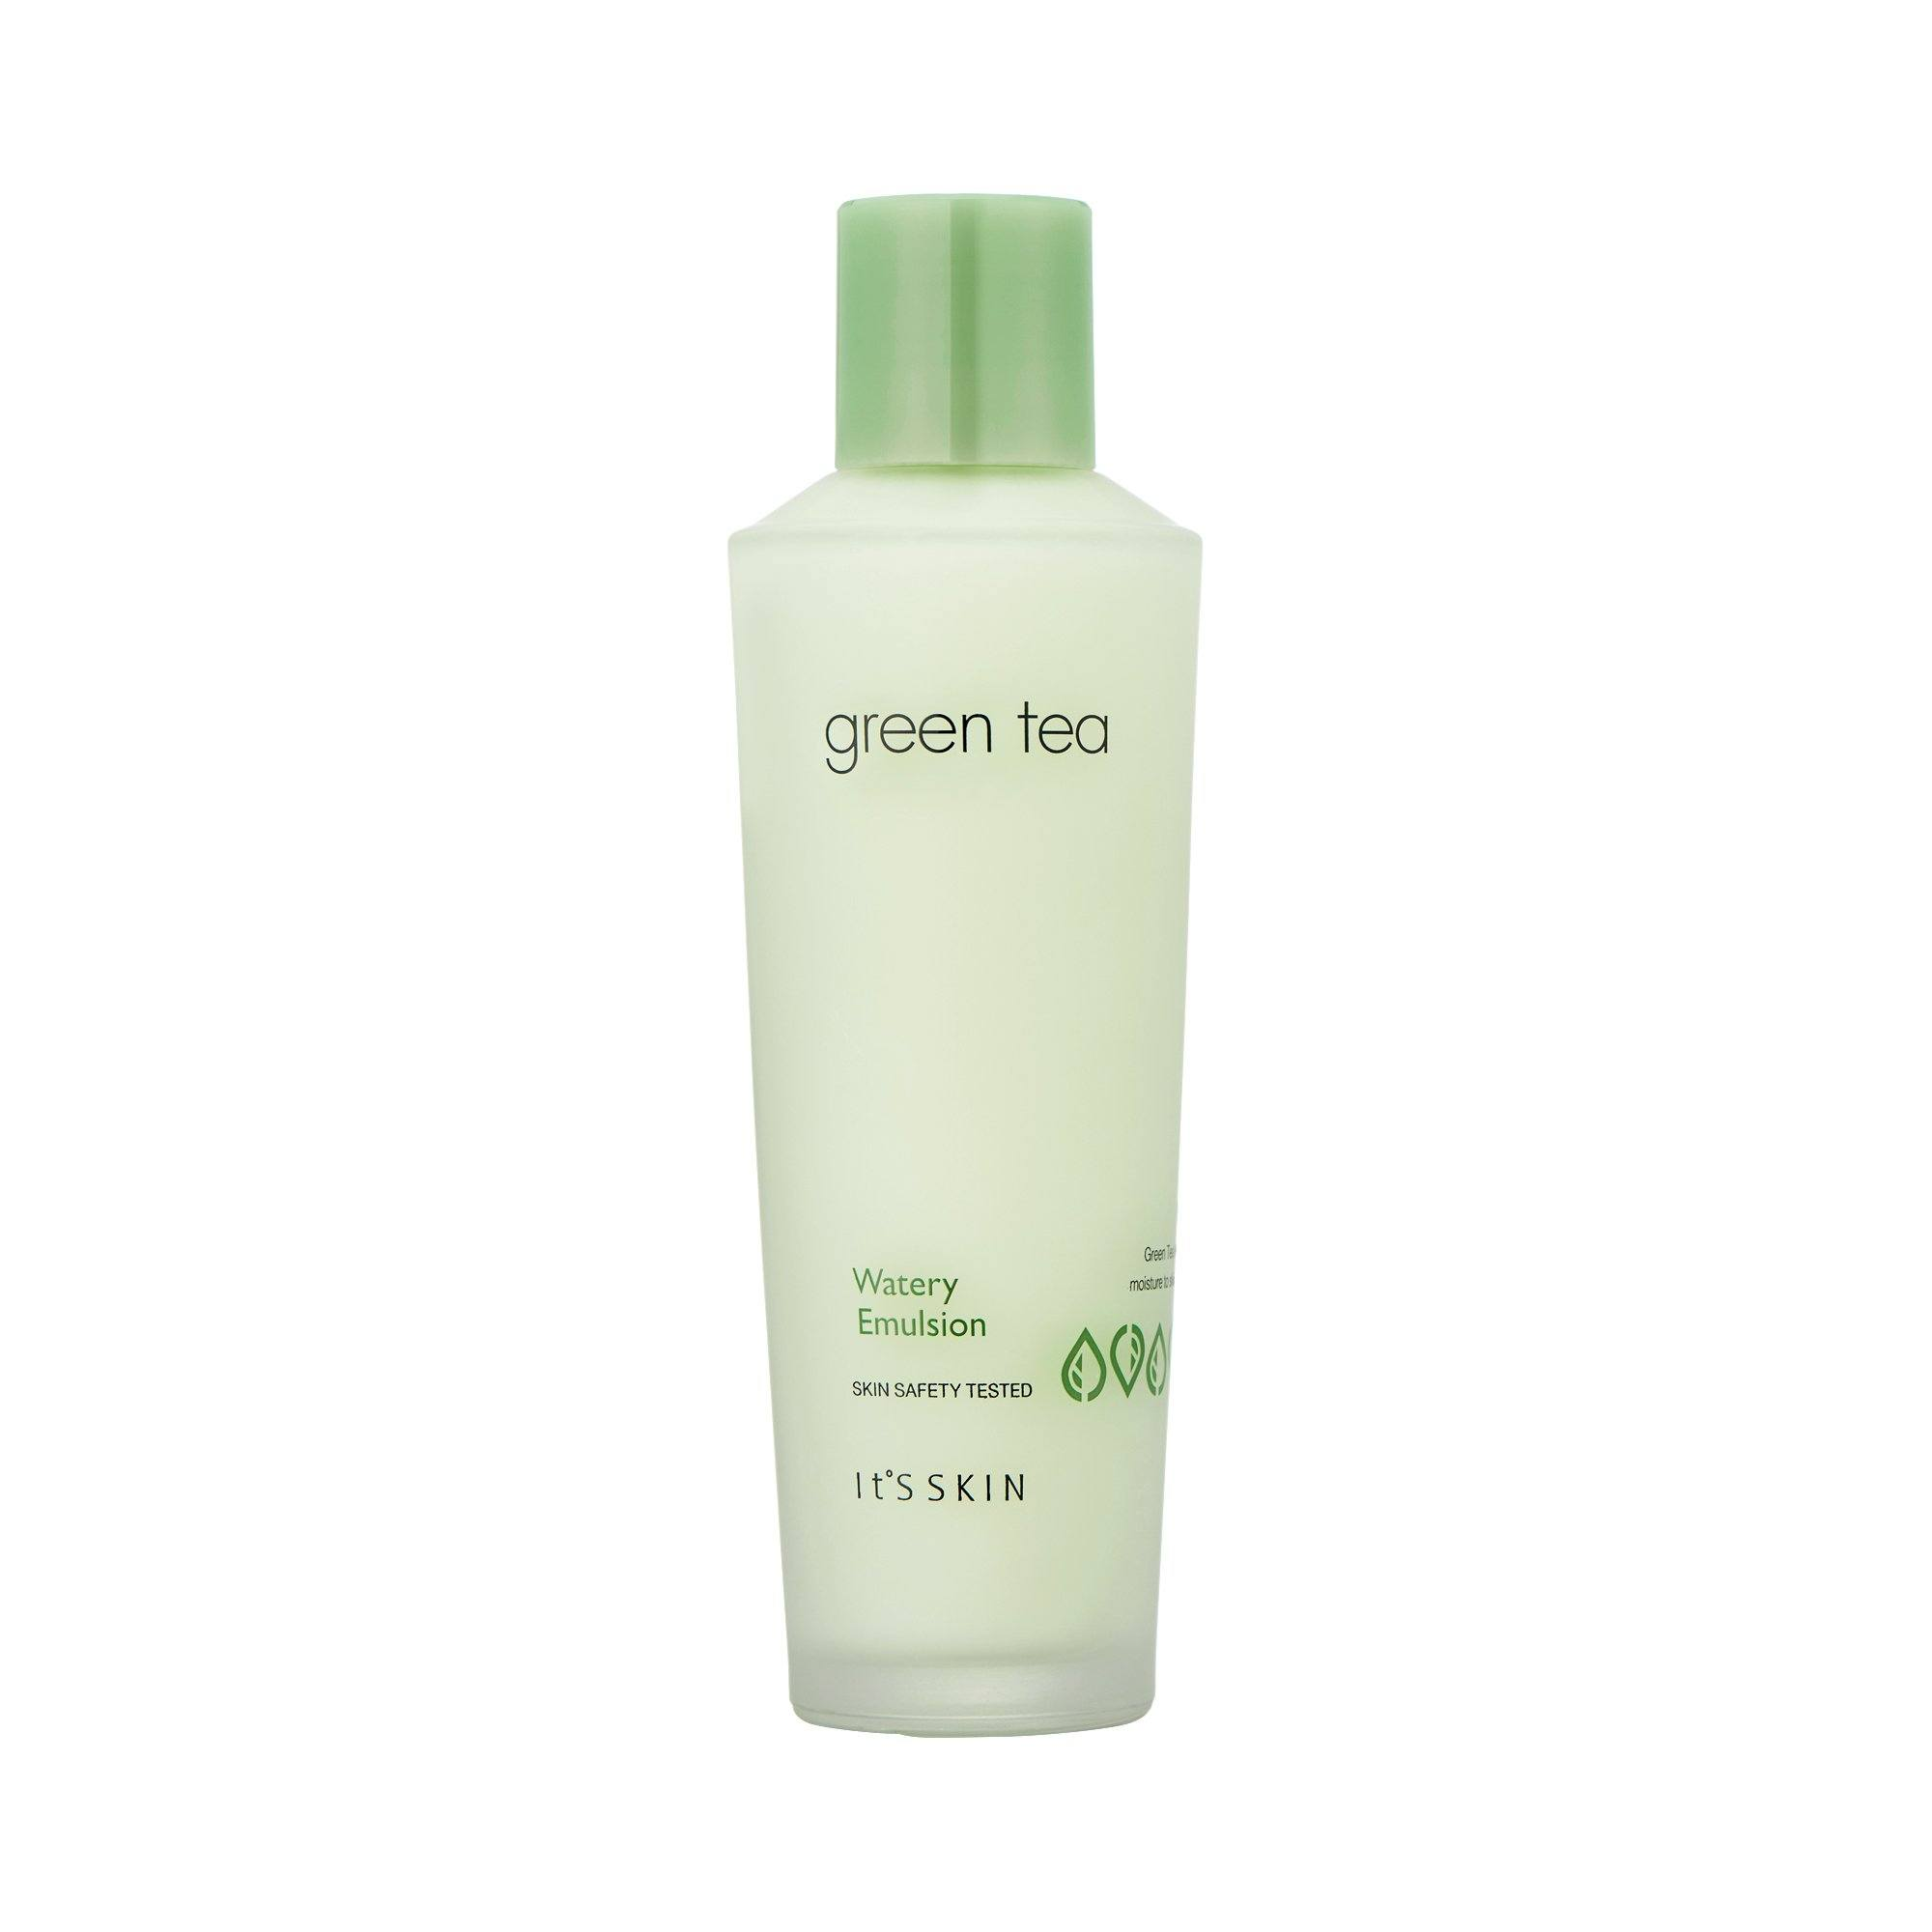 Health & Beauty > Personal Care > Cosmetics > Skin Care > Lotion & Moisturizer - Green Tea Watery Emulsion Emulsja Do Twarzy 150 Ml